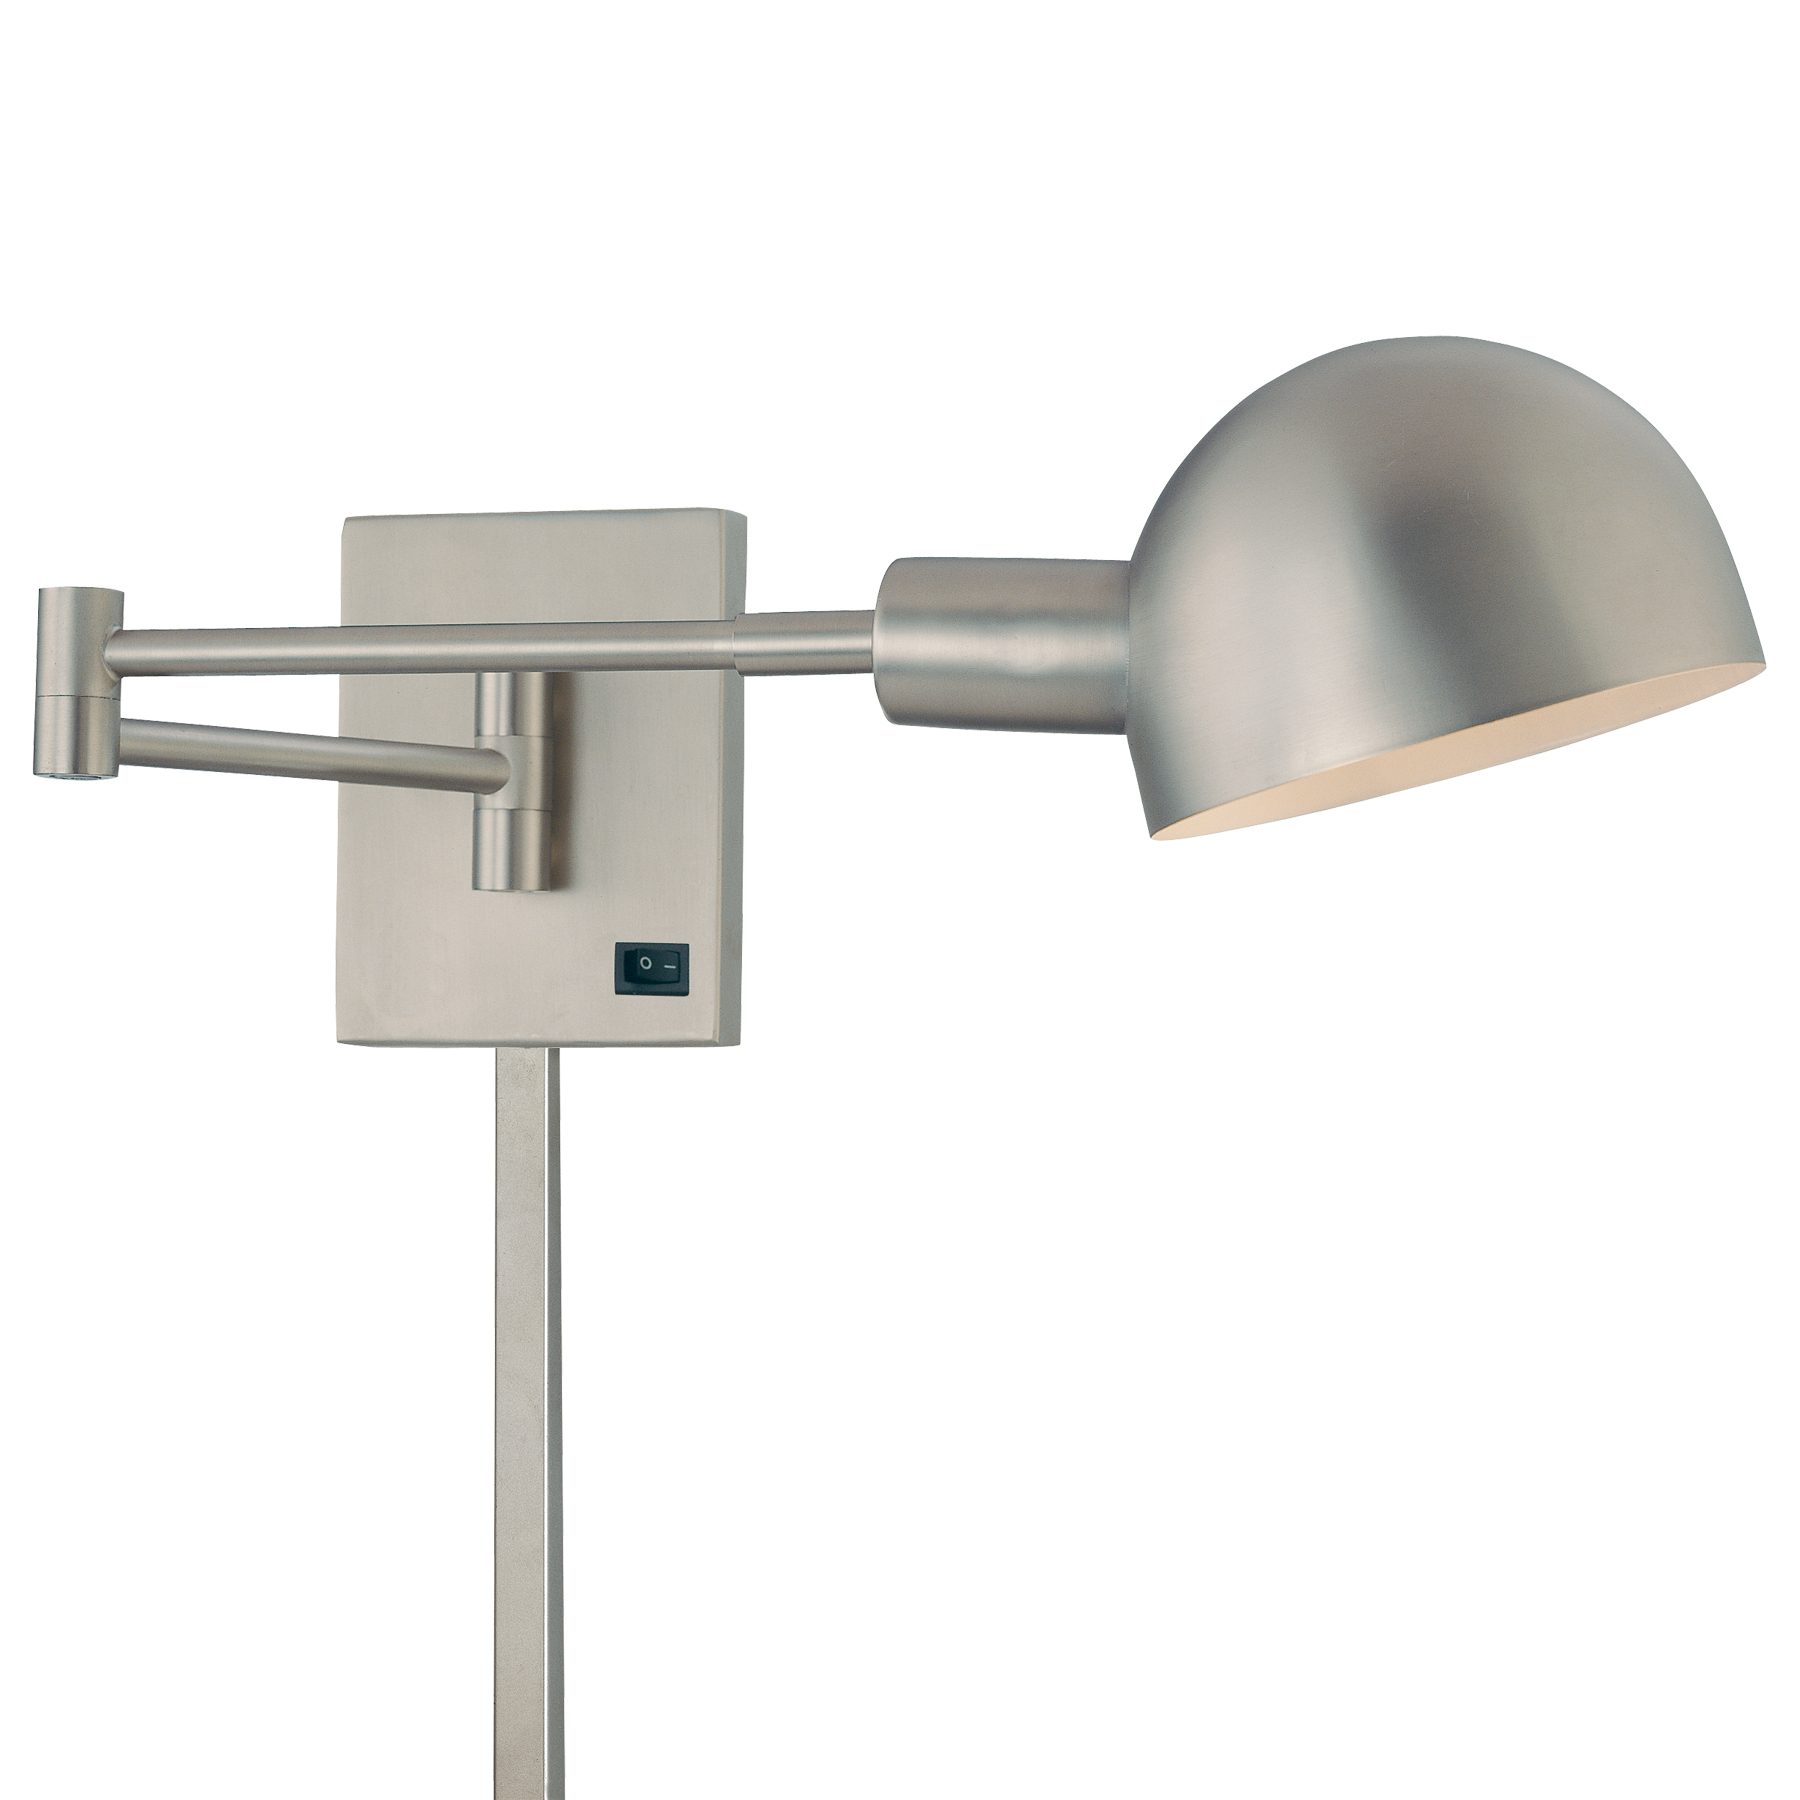 Wall Swing Lamps For Bedroom : P3 Swing Arm Wall Lamp by George Kovacs P600-3-603